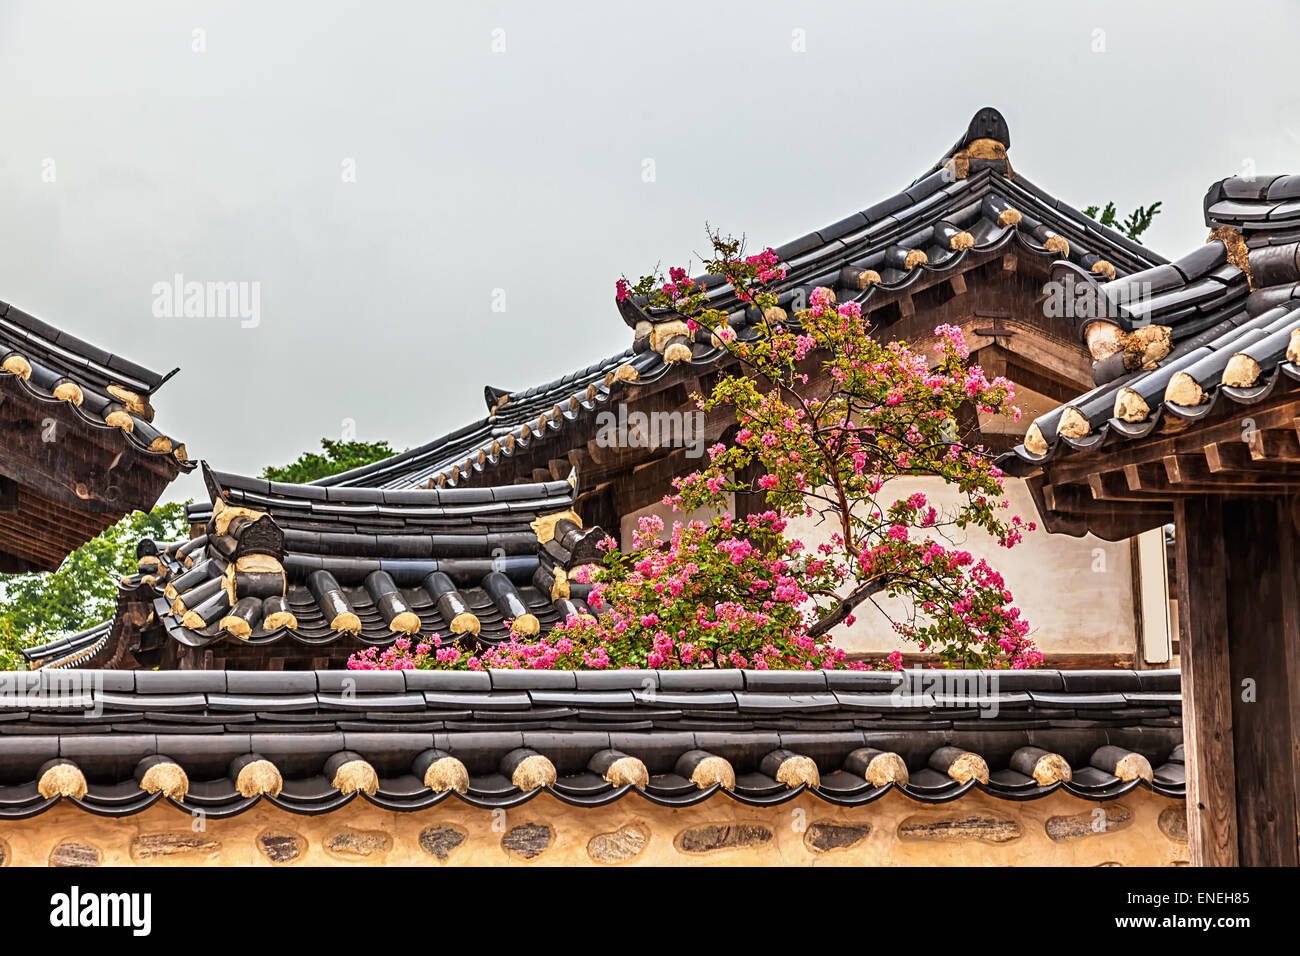 Traditional Old Korean Architecture Building With Tree And Pink Flowers At Rainy Day In South Korea